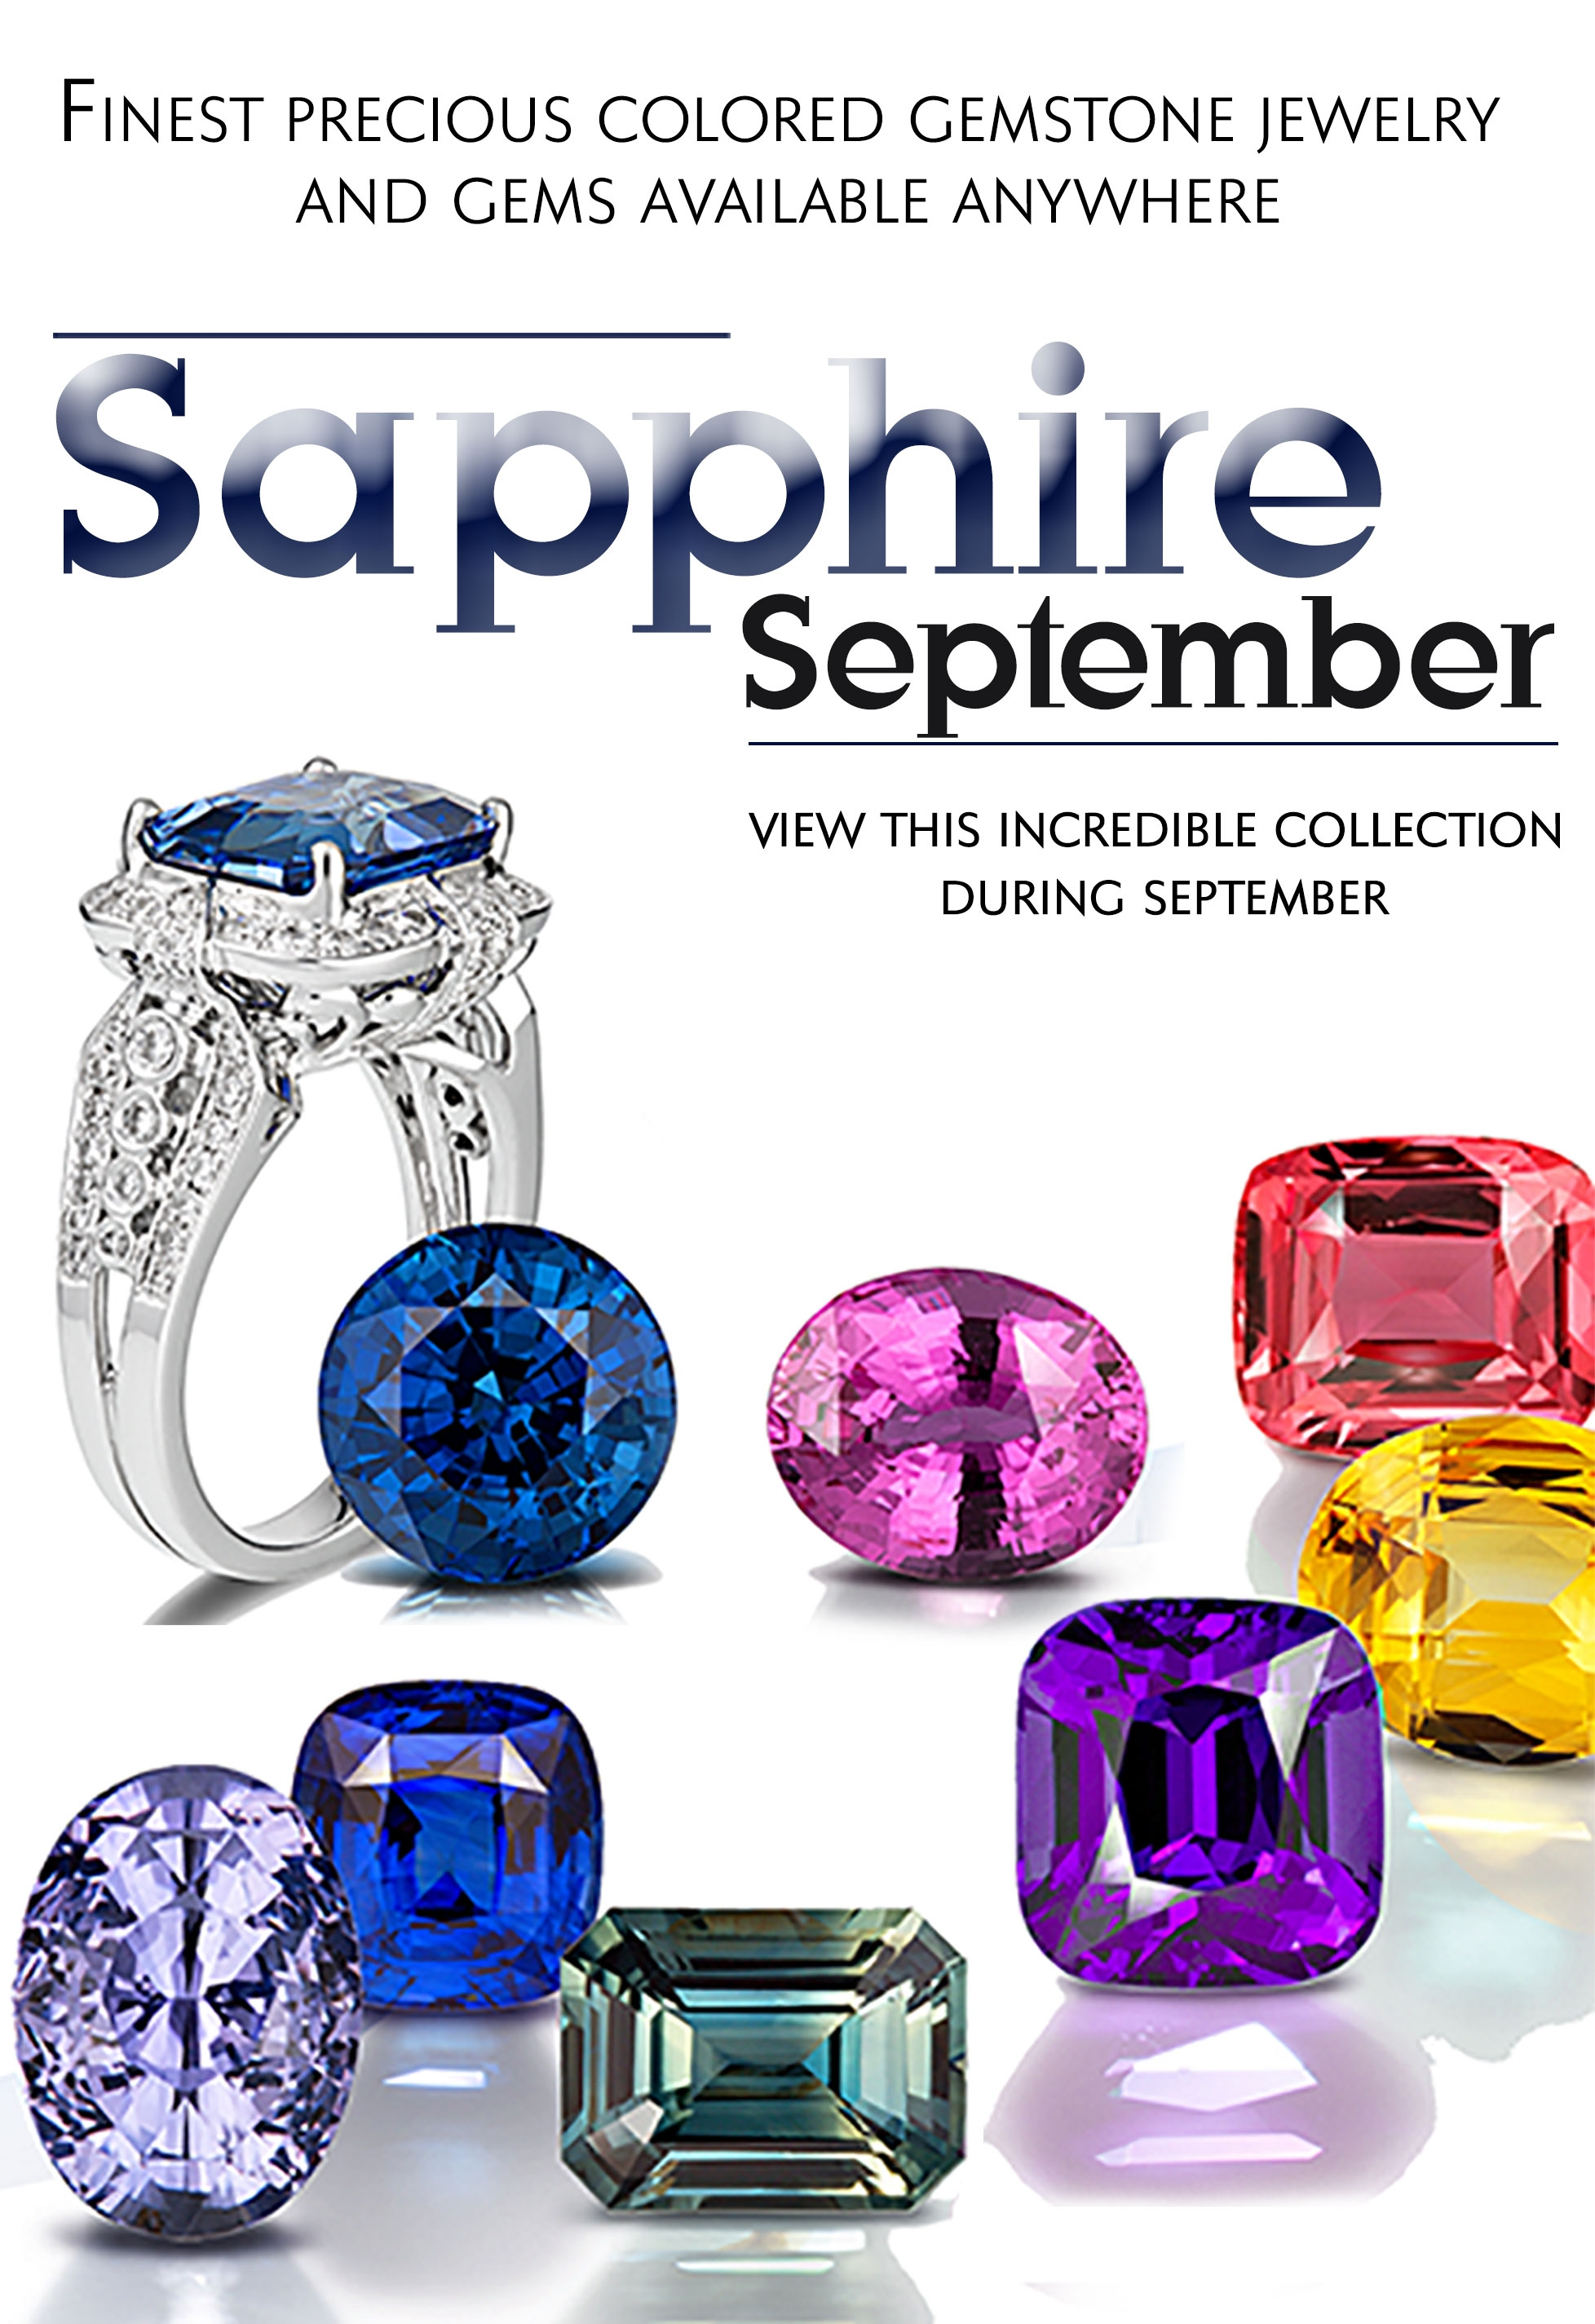 In Celebration of Sapphire